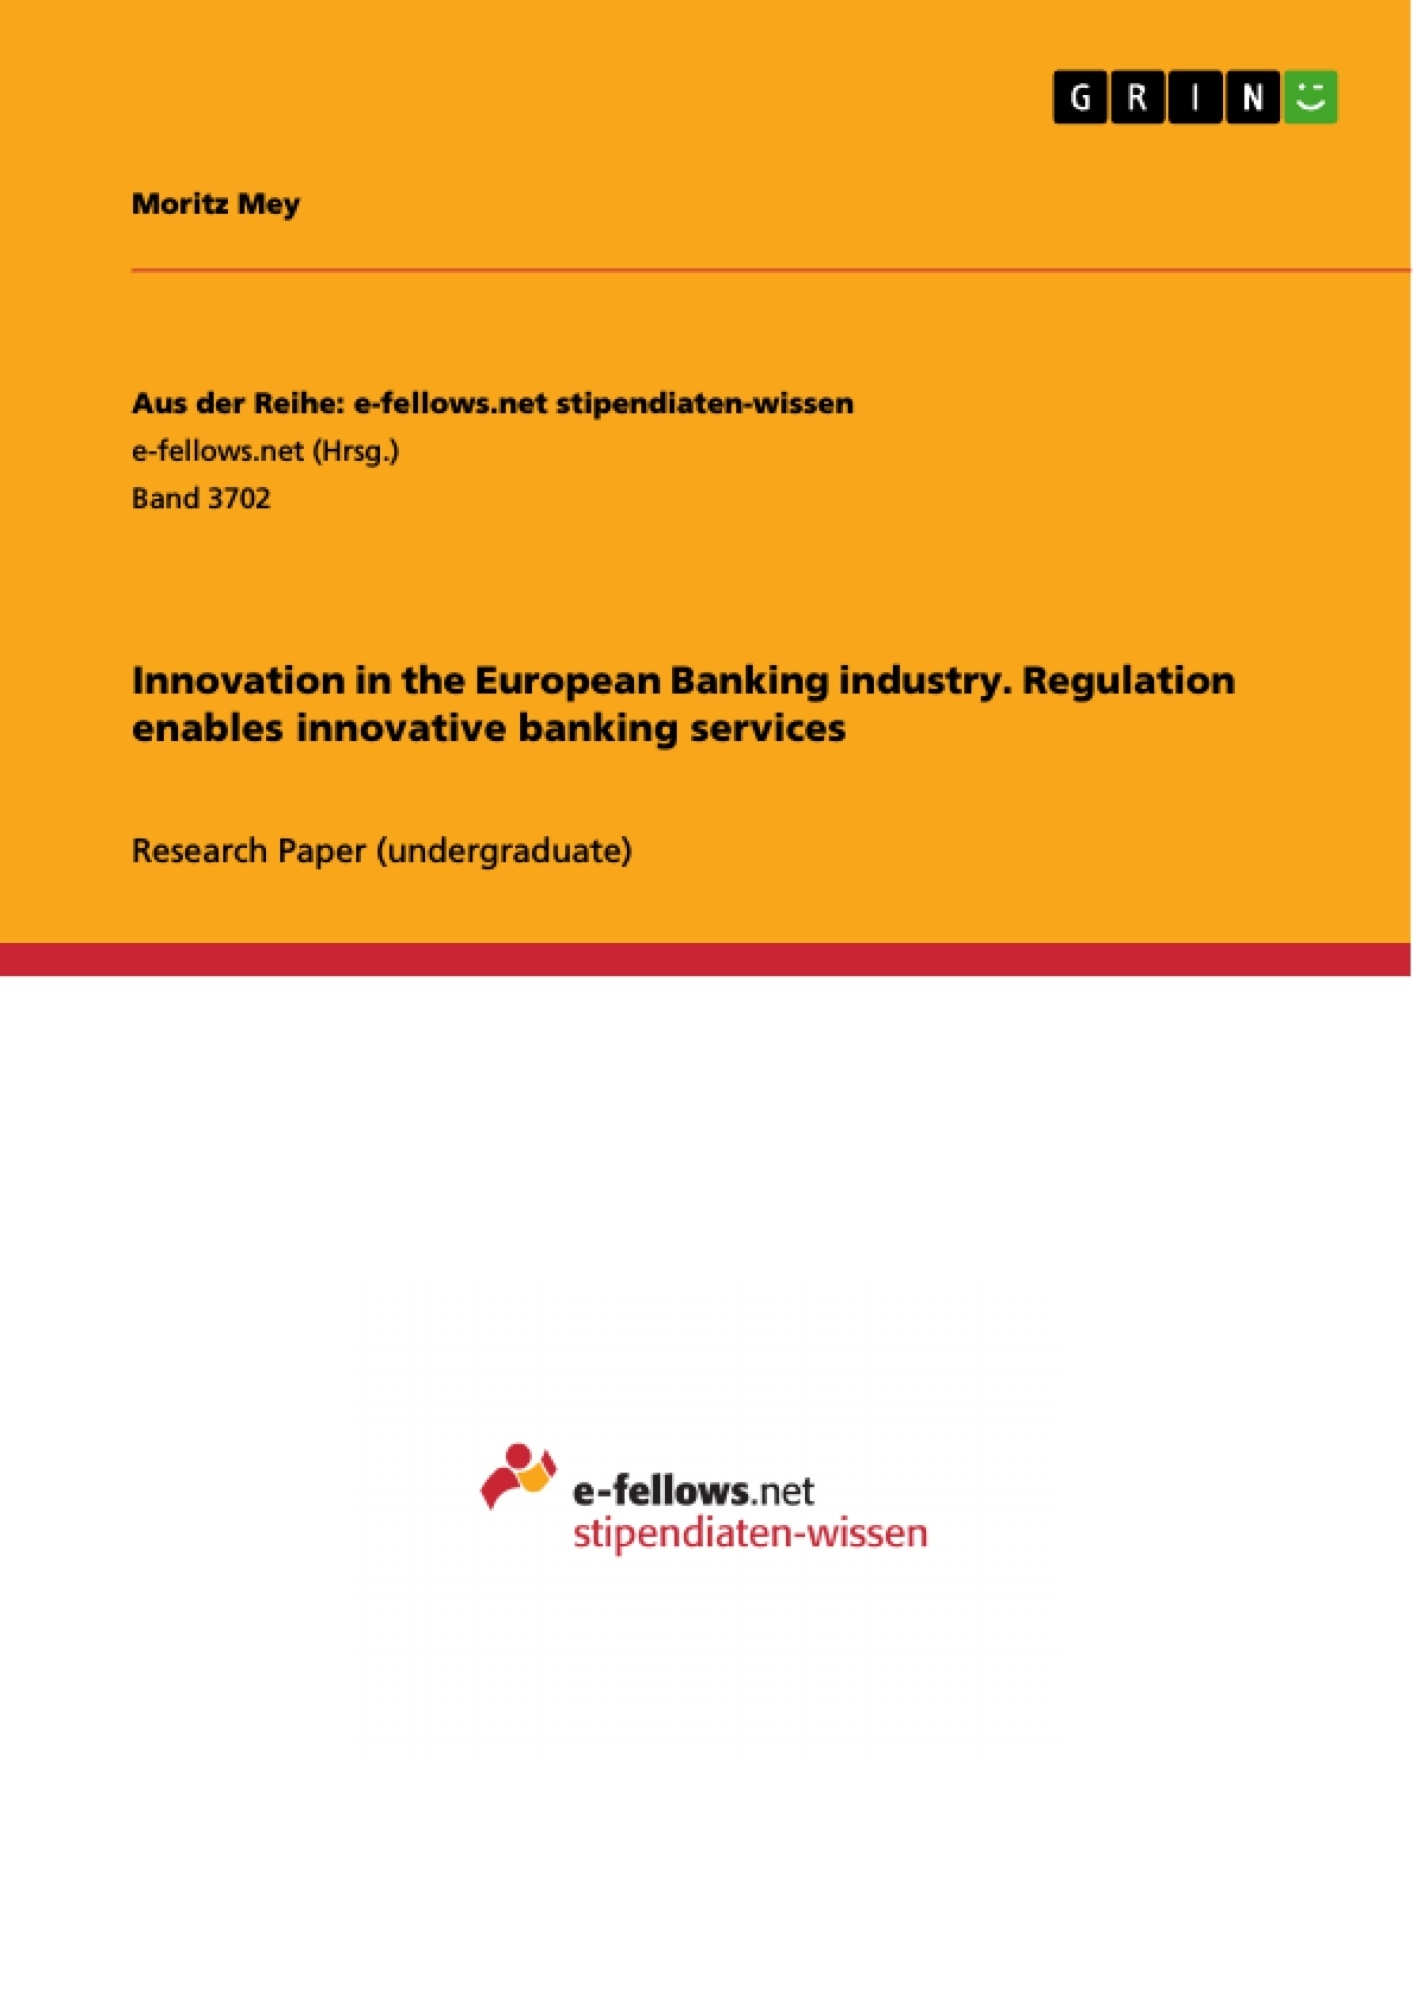 Title: Innovation in the European Banking industry. Regulation enables innovative banking services